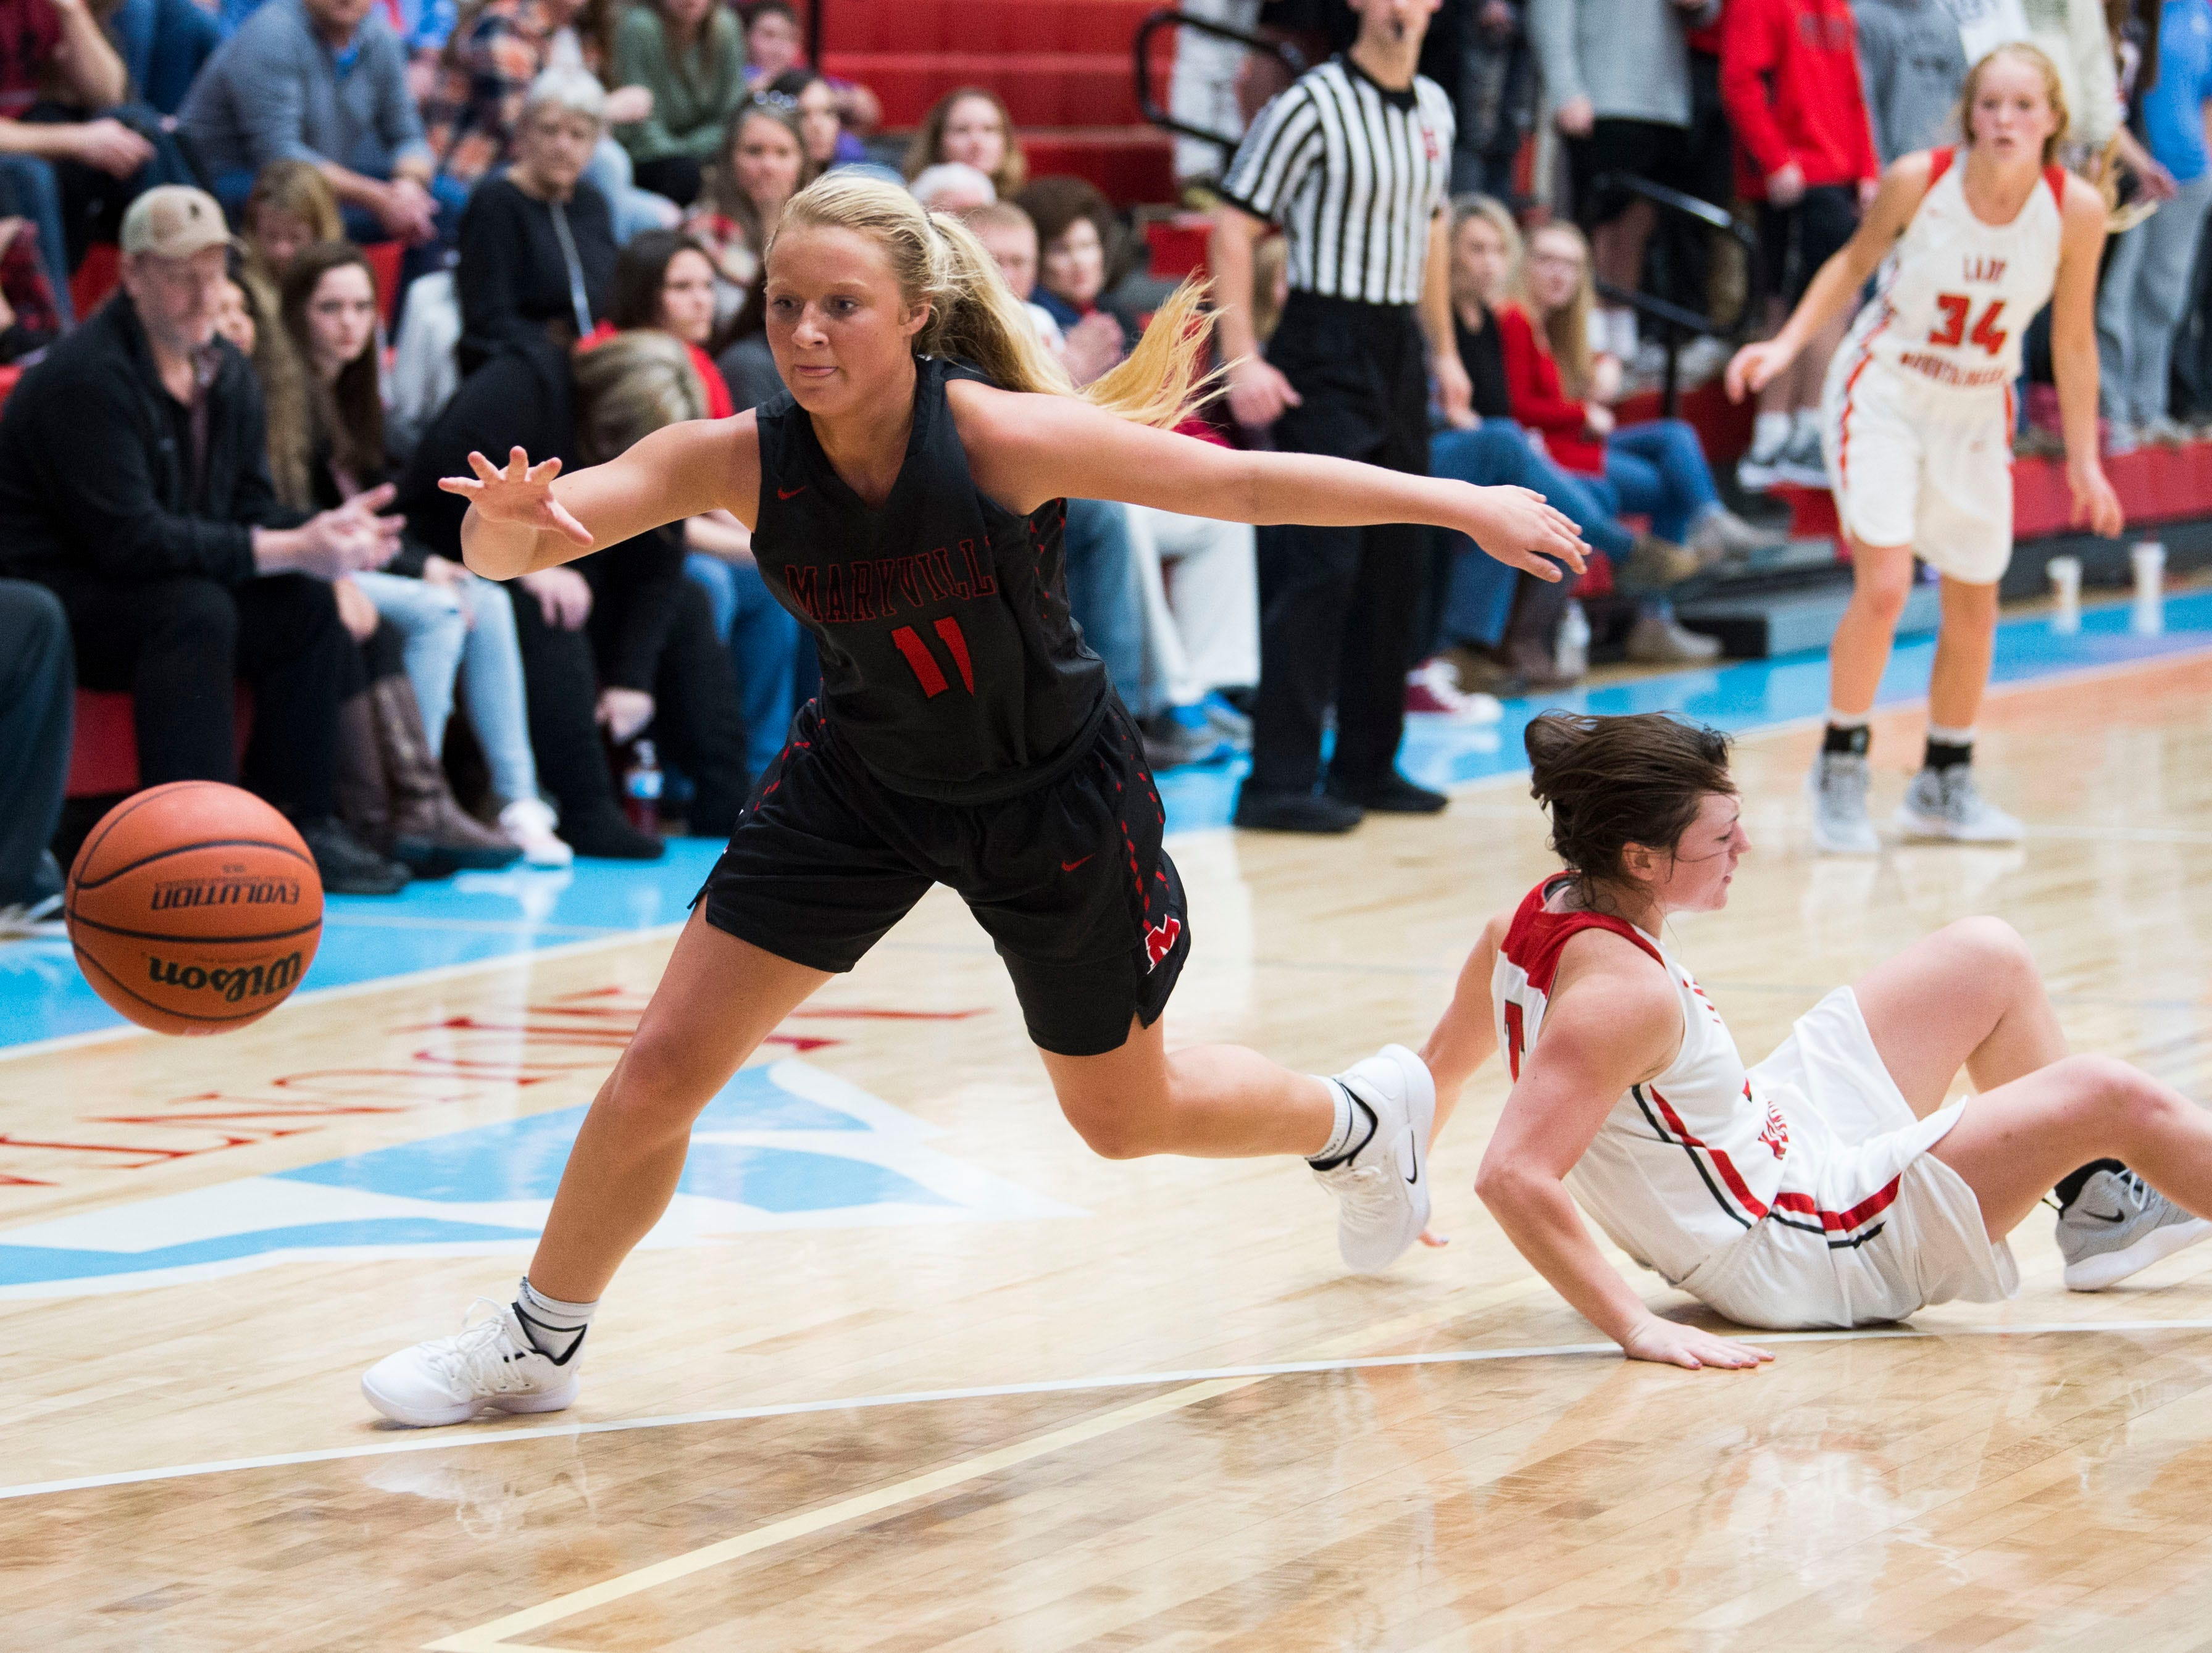 Maryville's Courtney Carruthers (11) gains possession of the ball during a high school basketball game between Maryville and Heritage at Heritage Friday, Jan. 4, 2019. Both Maryville boys and girls teams beat Heritage.